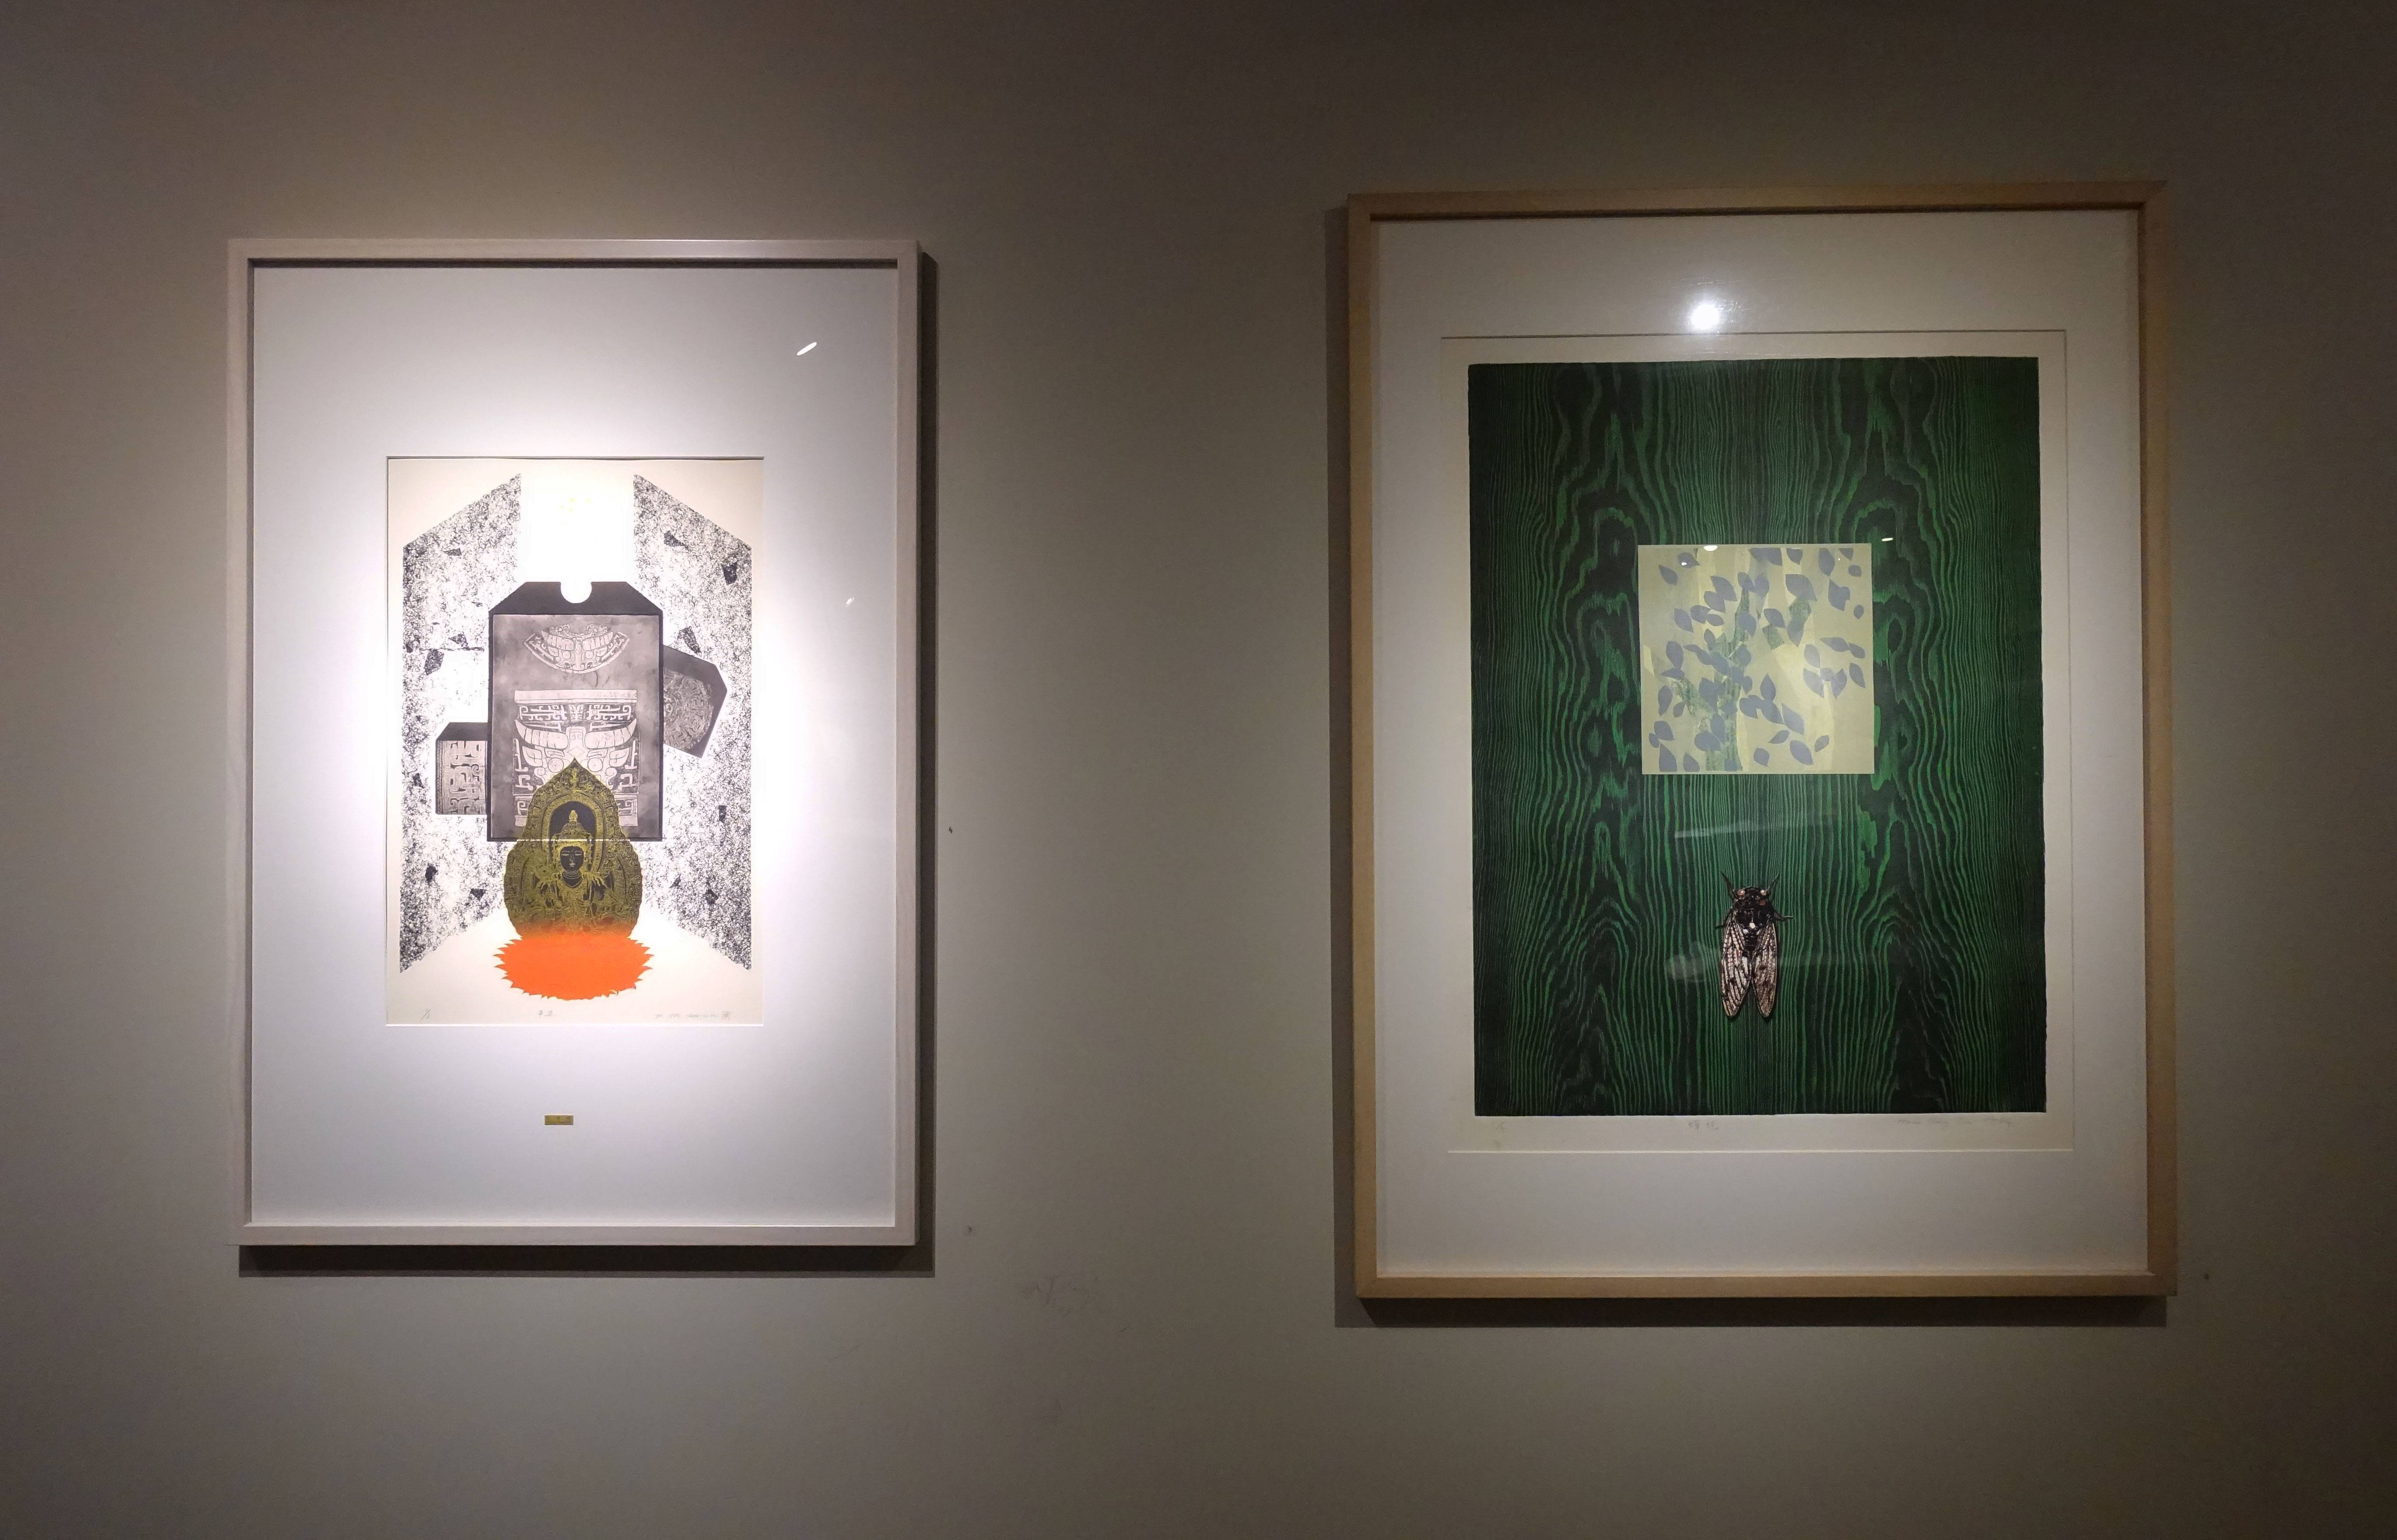 鐘有輝,《平安 Safety》(左),1985,銅板、紙張 Copperplate, Paper。林雪卿,《蟬蛻 Metamorphosis》(右),1995,併用版、紙張 Combined Methods。